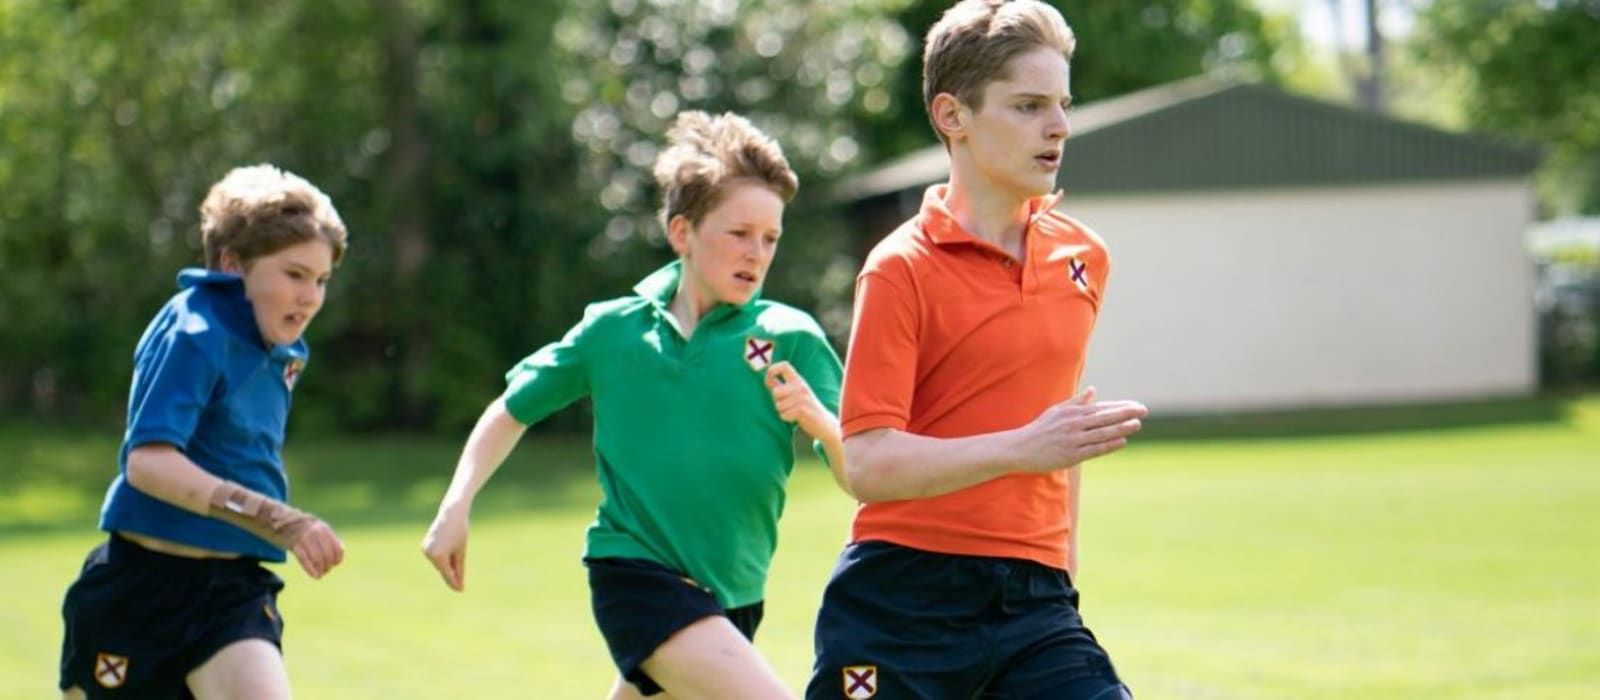 Cranmore Prep Fun Run to Use West Horsley Place Estate